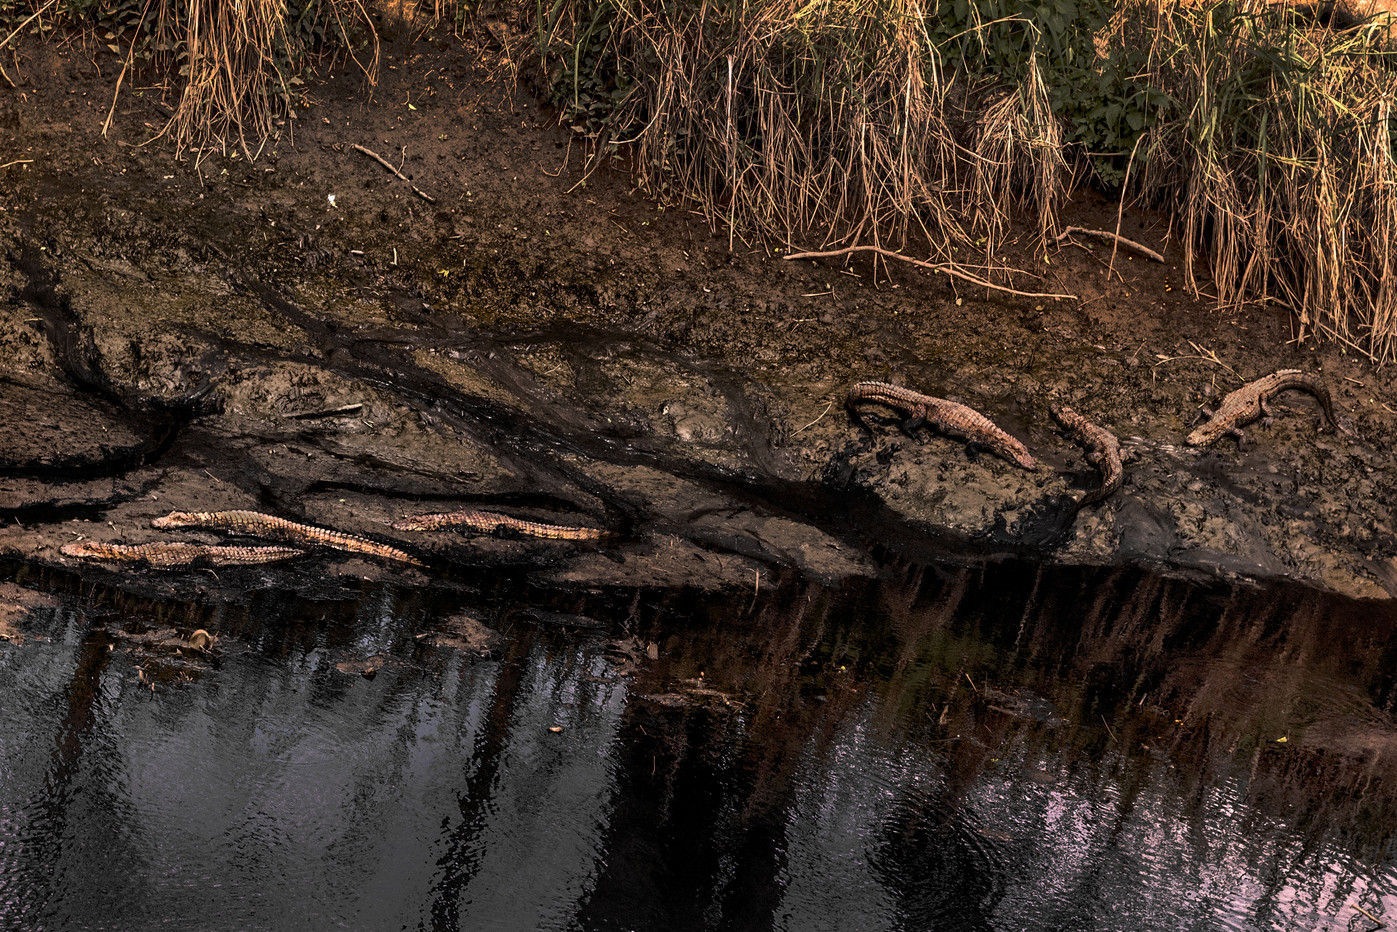 Half a day there are always 6 alligators sunning very close to the bridge.